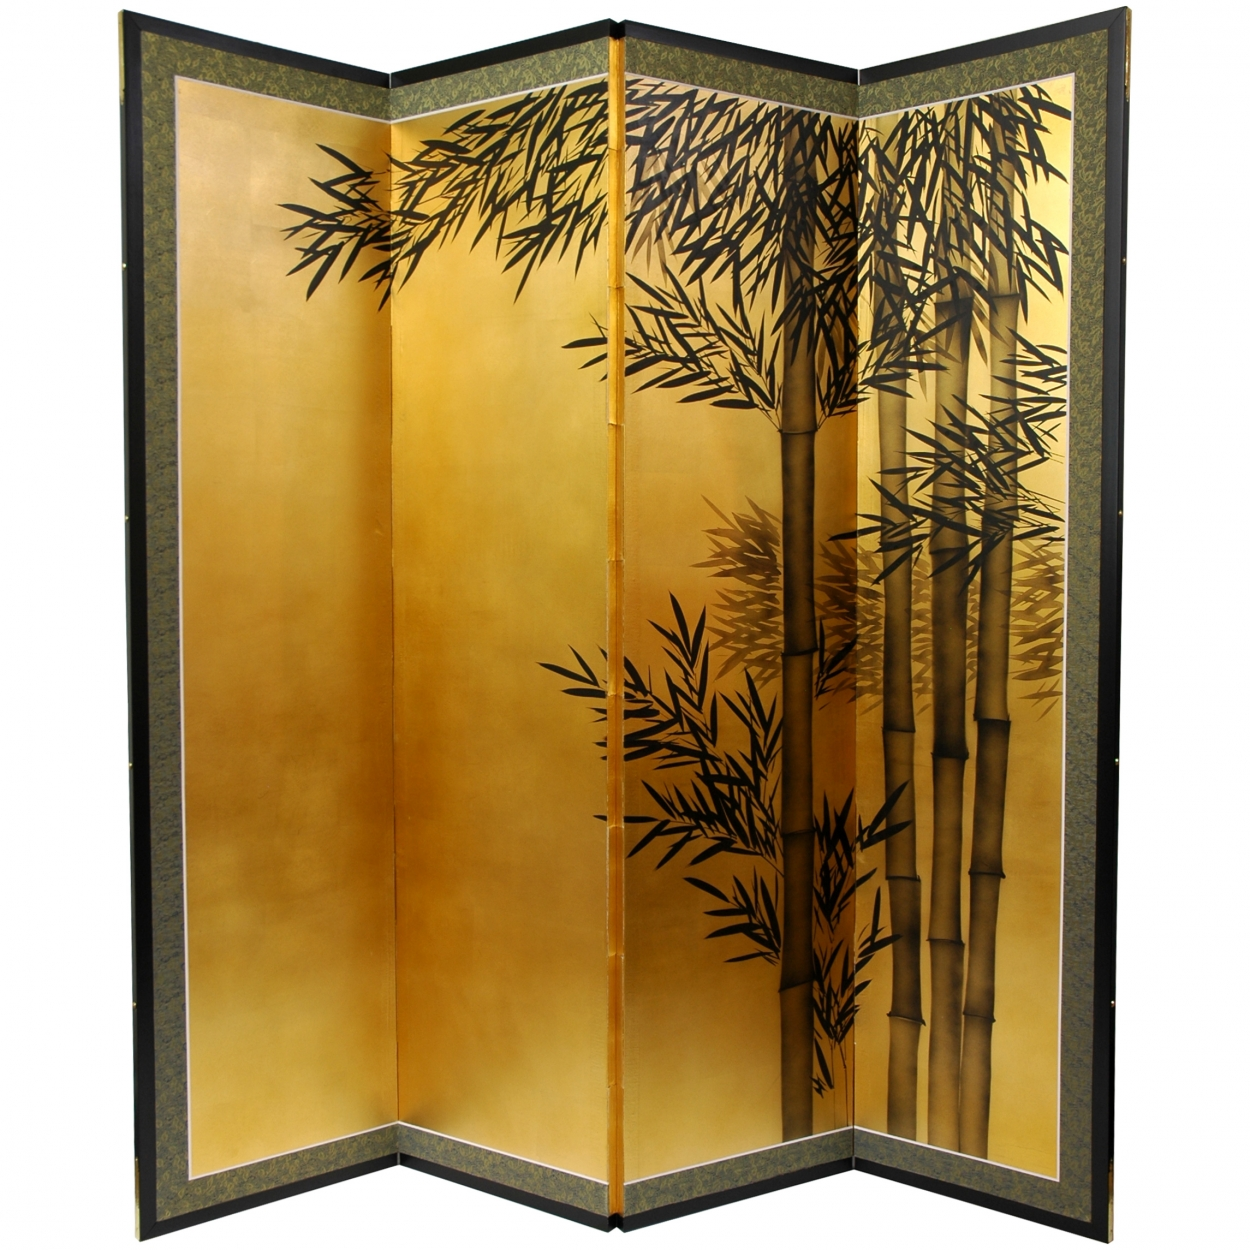 Buy 5 ft Tall Gold Leaf Bamboo Room Divider Online SILK